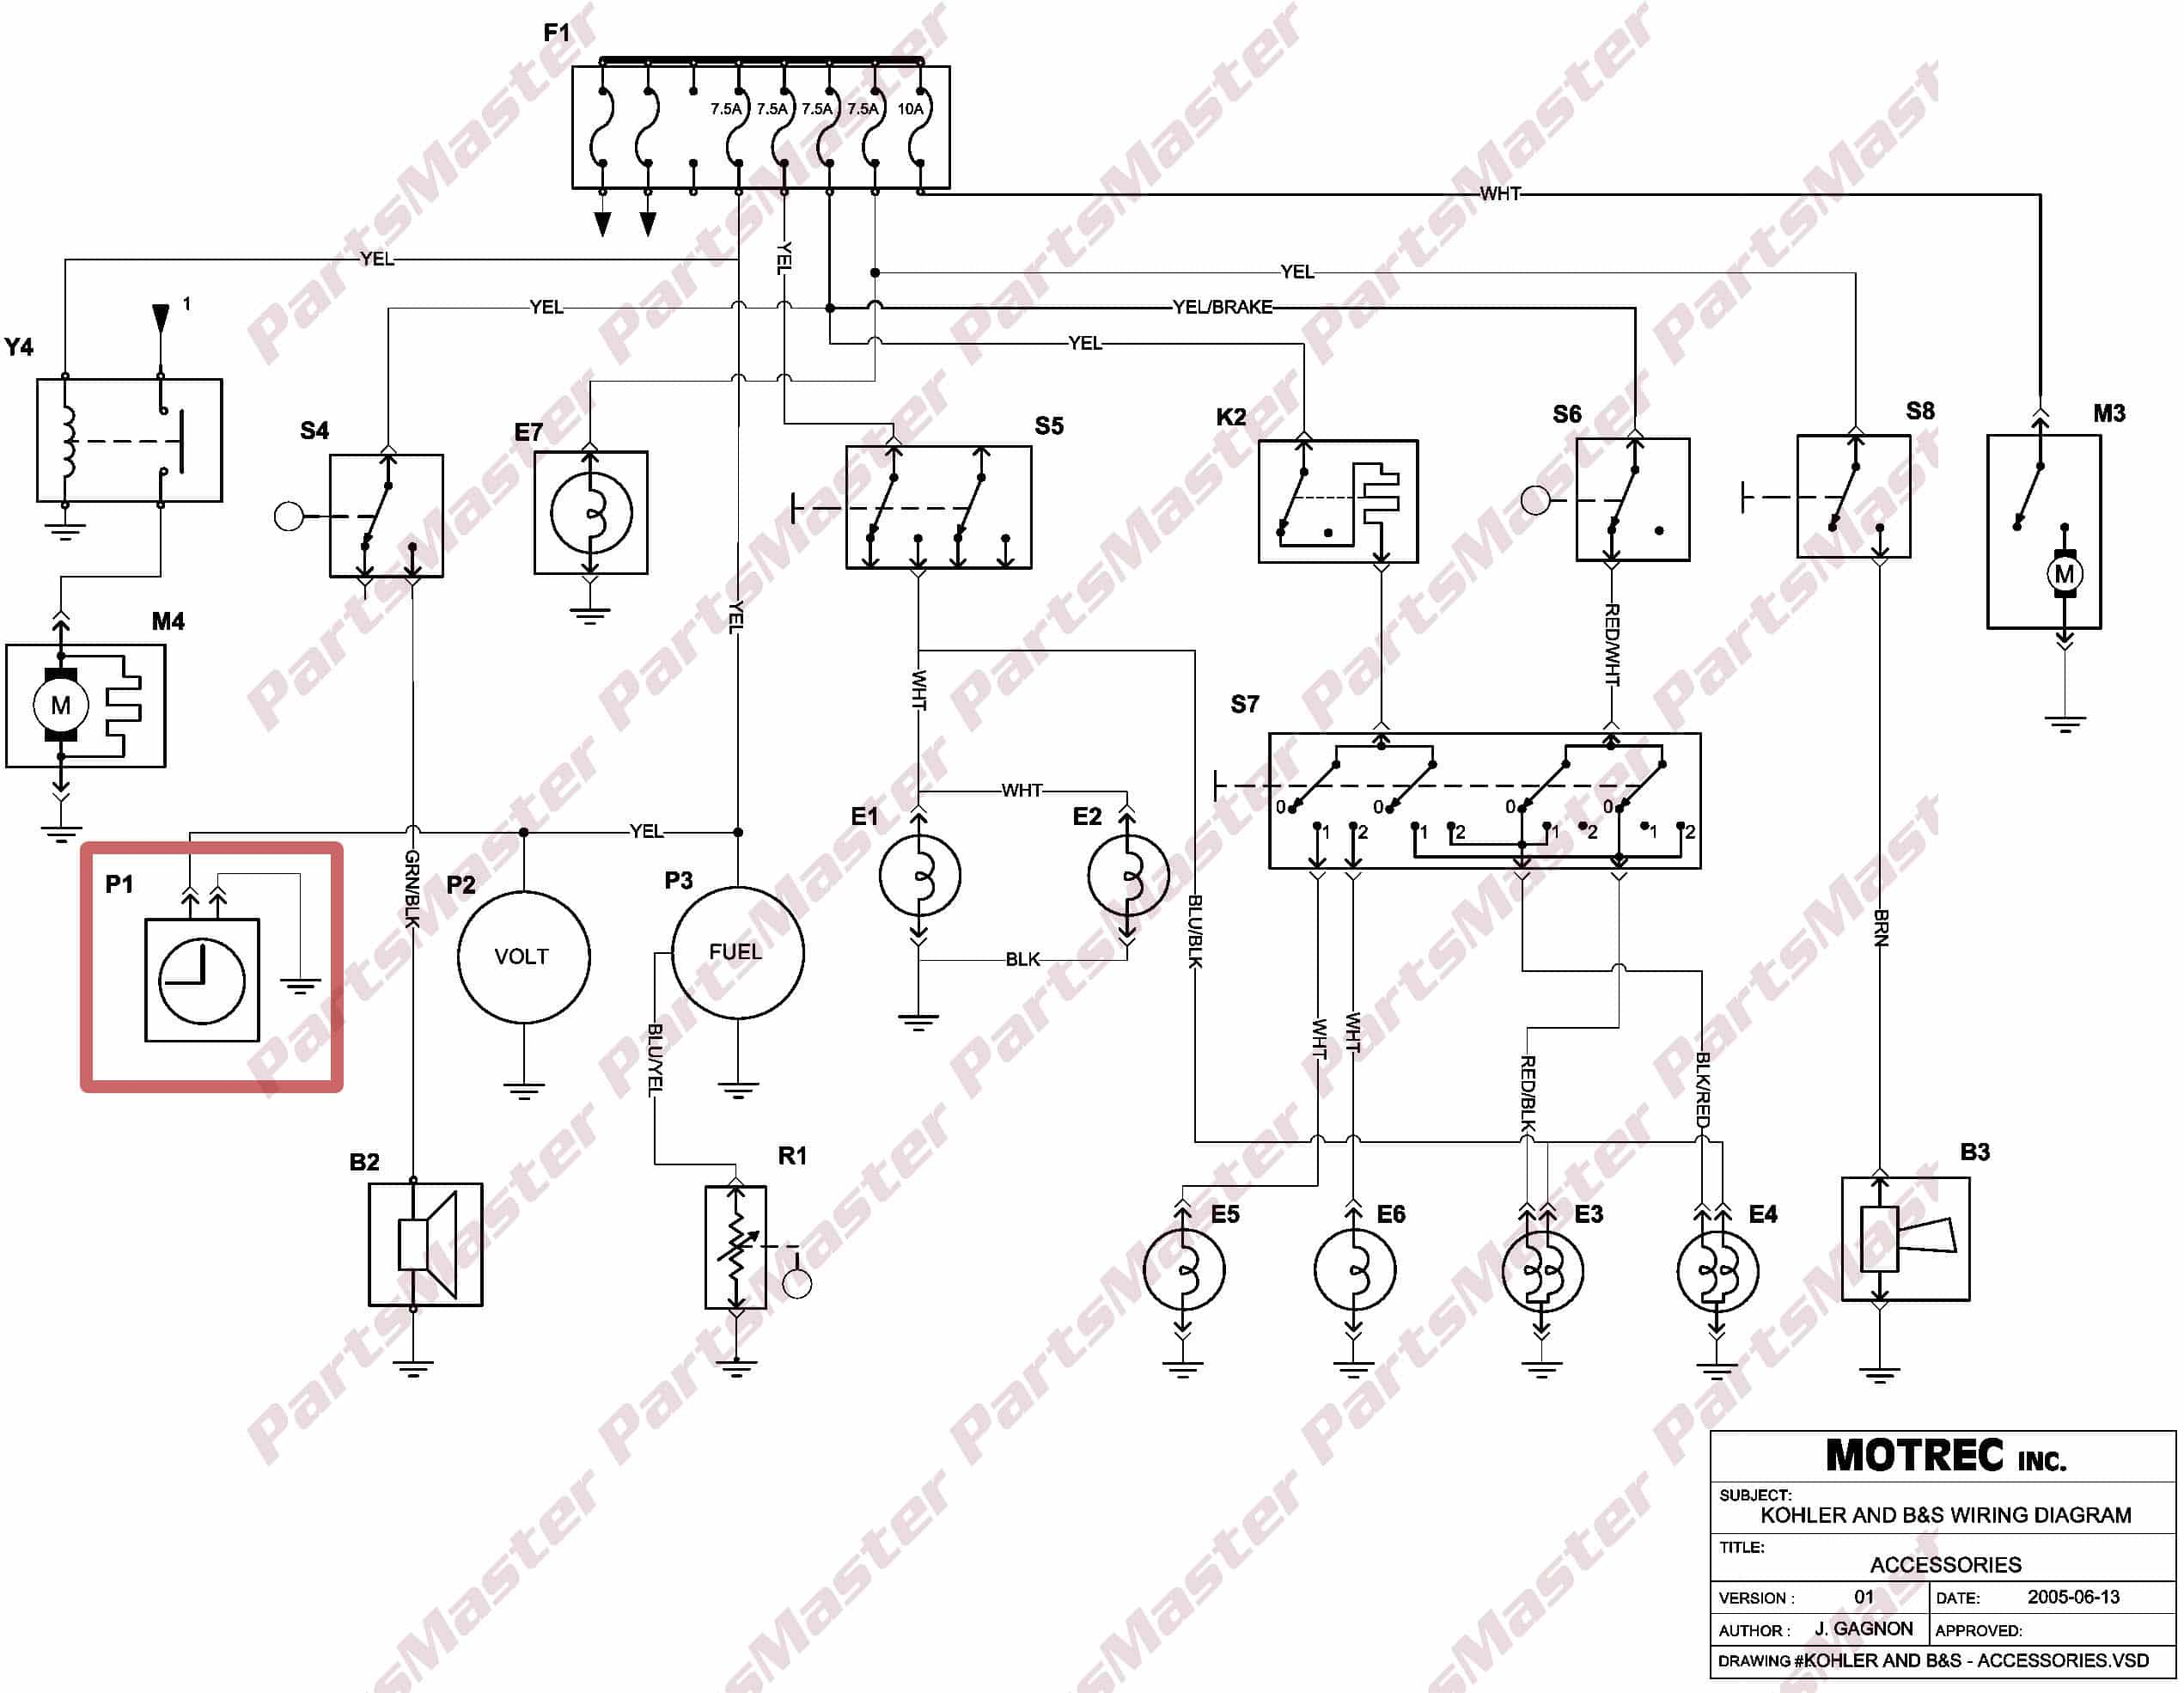 S14 Wiring Diagram Cab Free For You 1994 Bluebird Bus Lift Library Rh 55 Evitta De S13 Harness